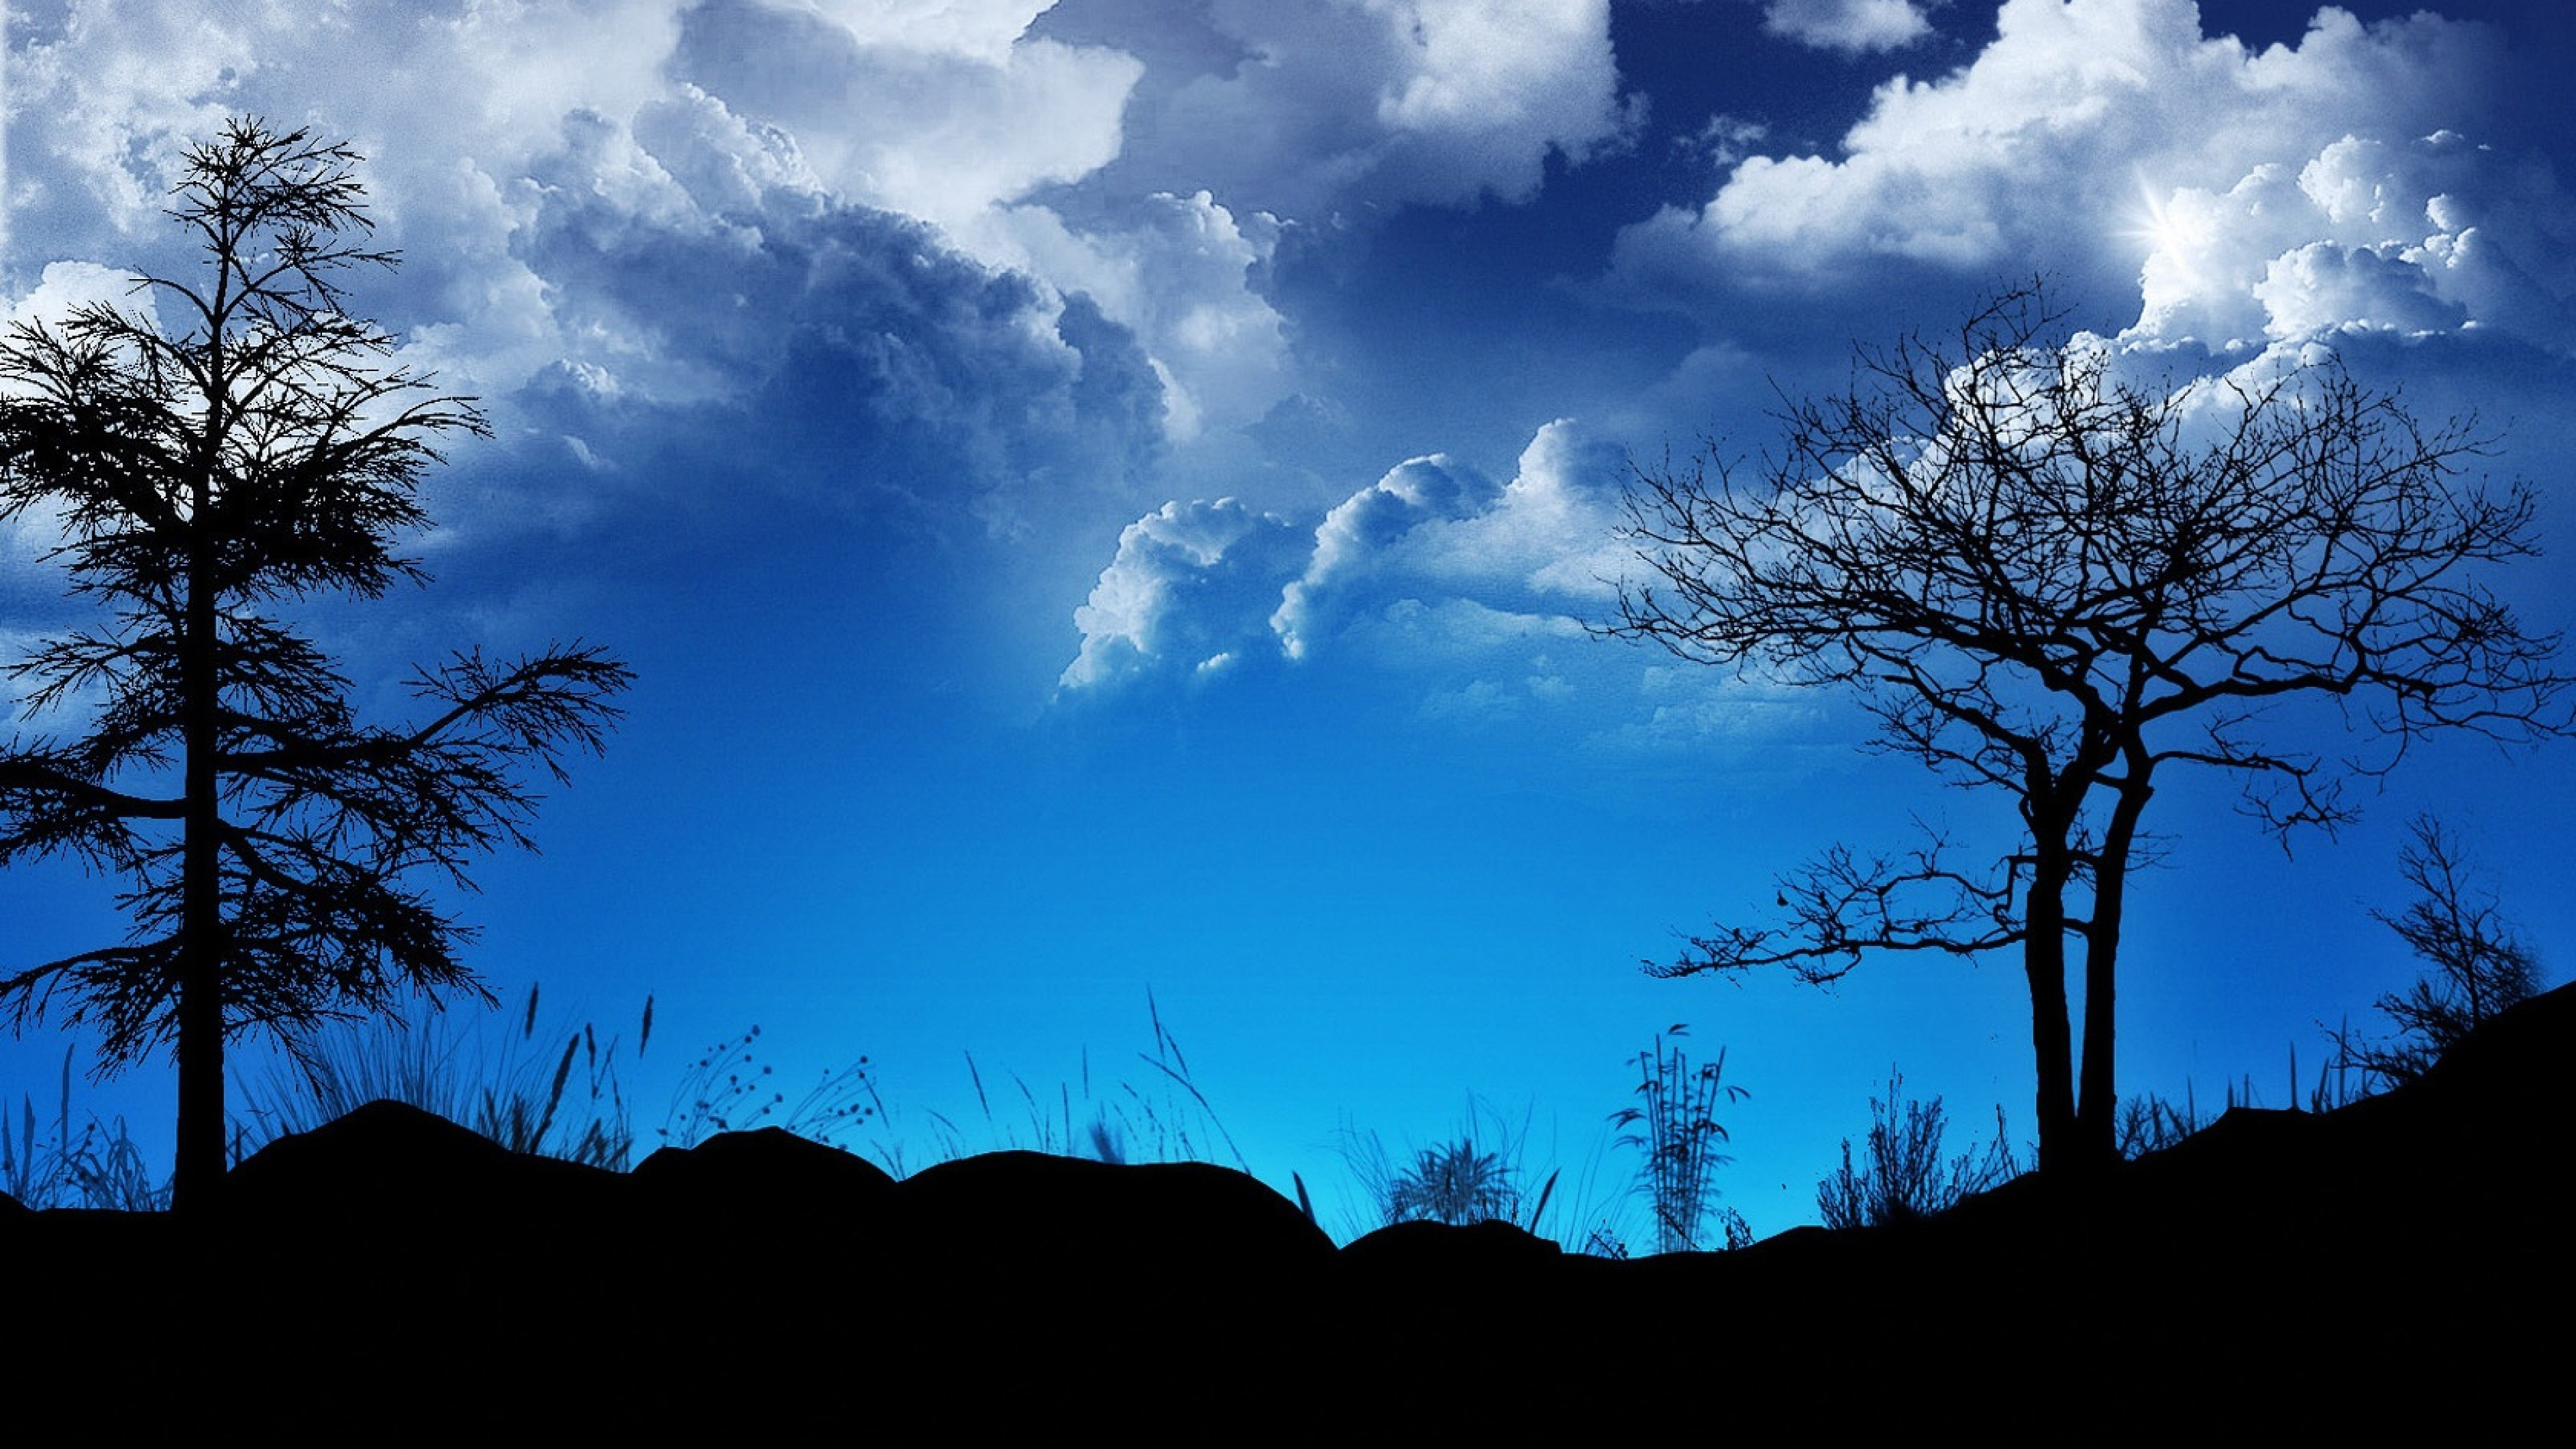 Wallpaper clouds, sky, night, outlines, blue, black, trees